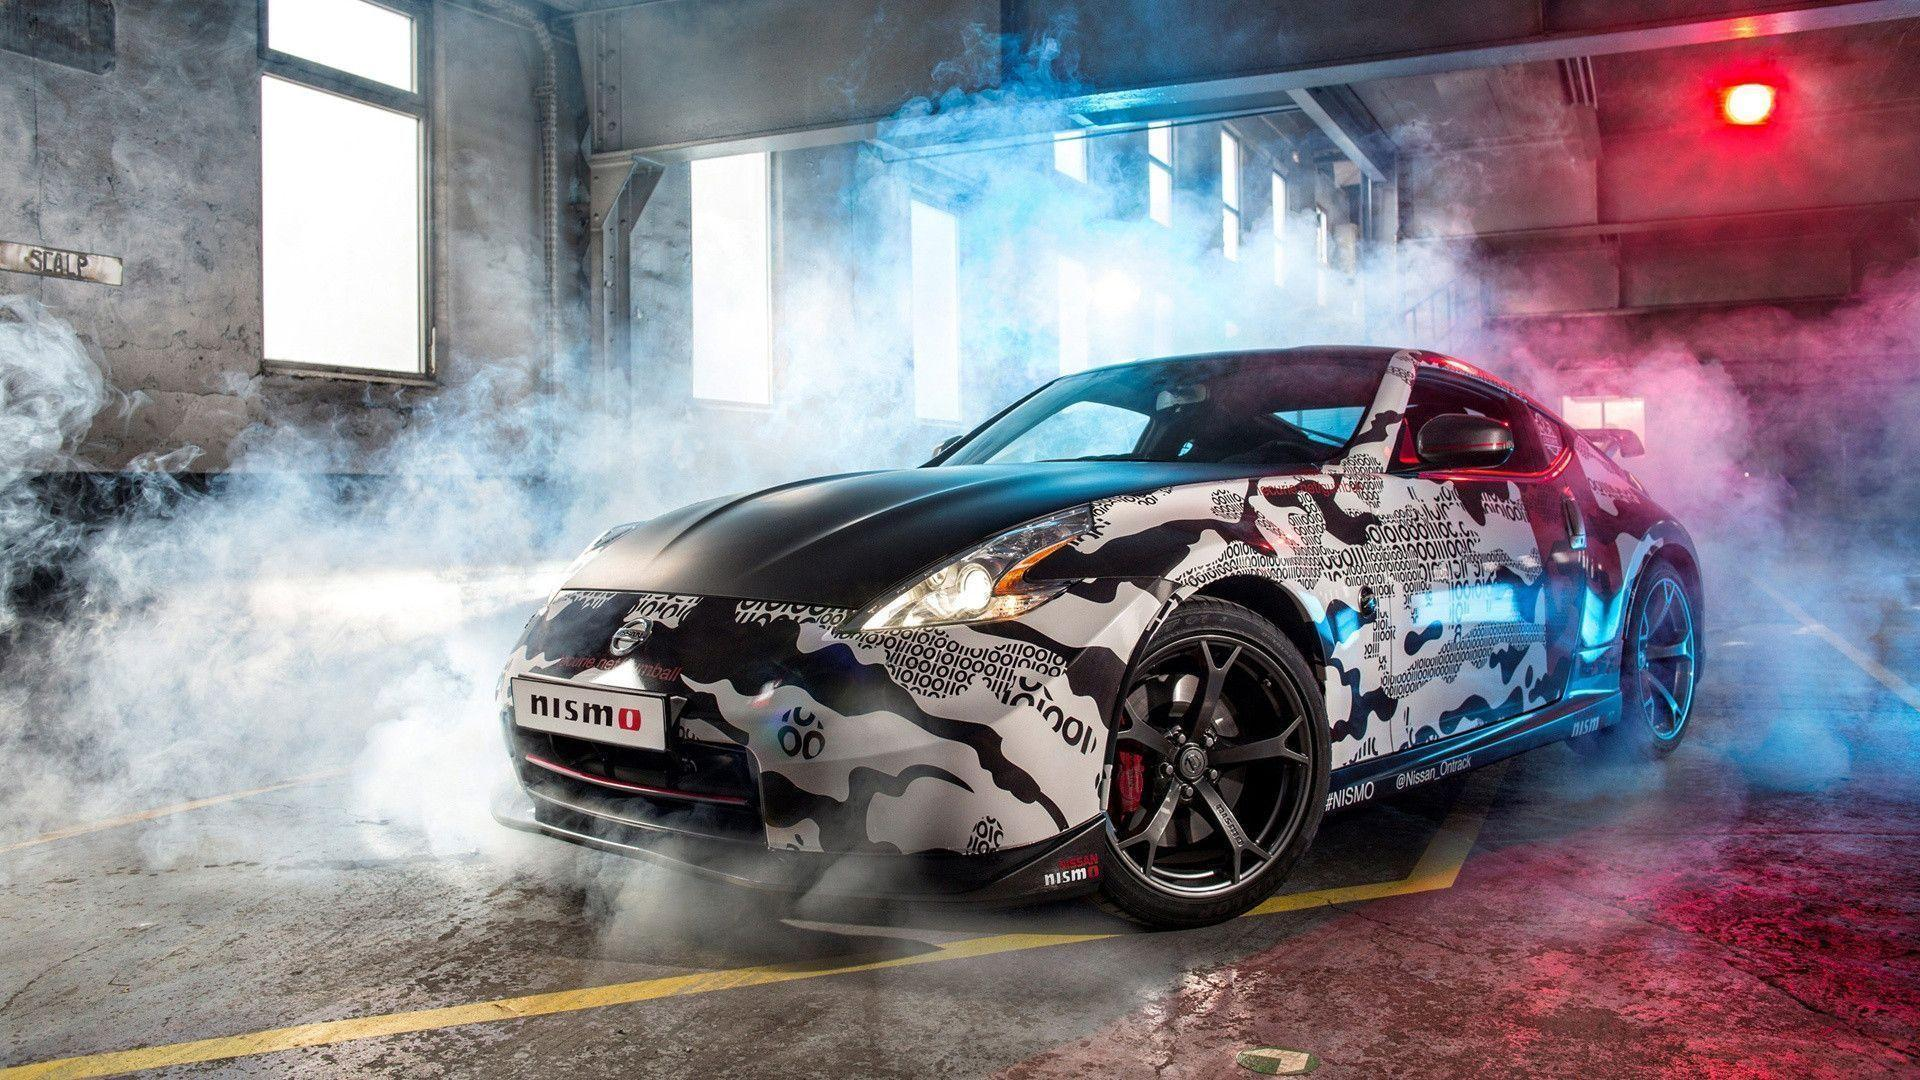 2013 Nissan 370Z NISMO Gumball 3000 Rally Wallpapers